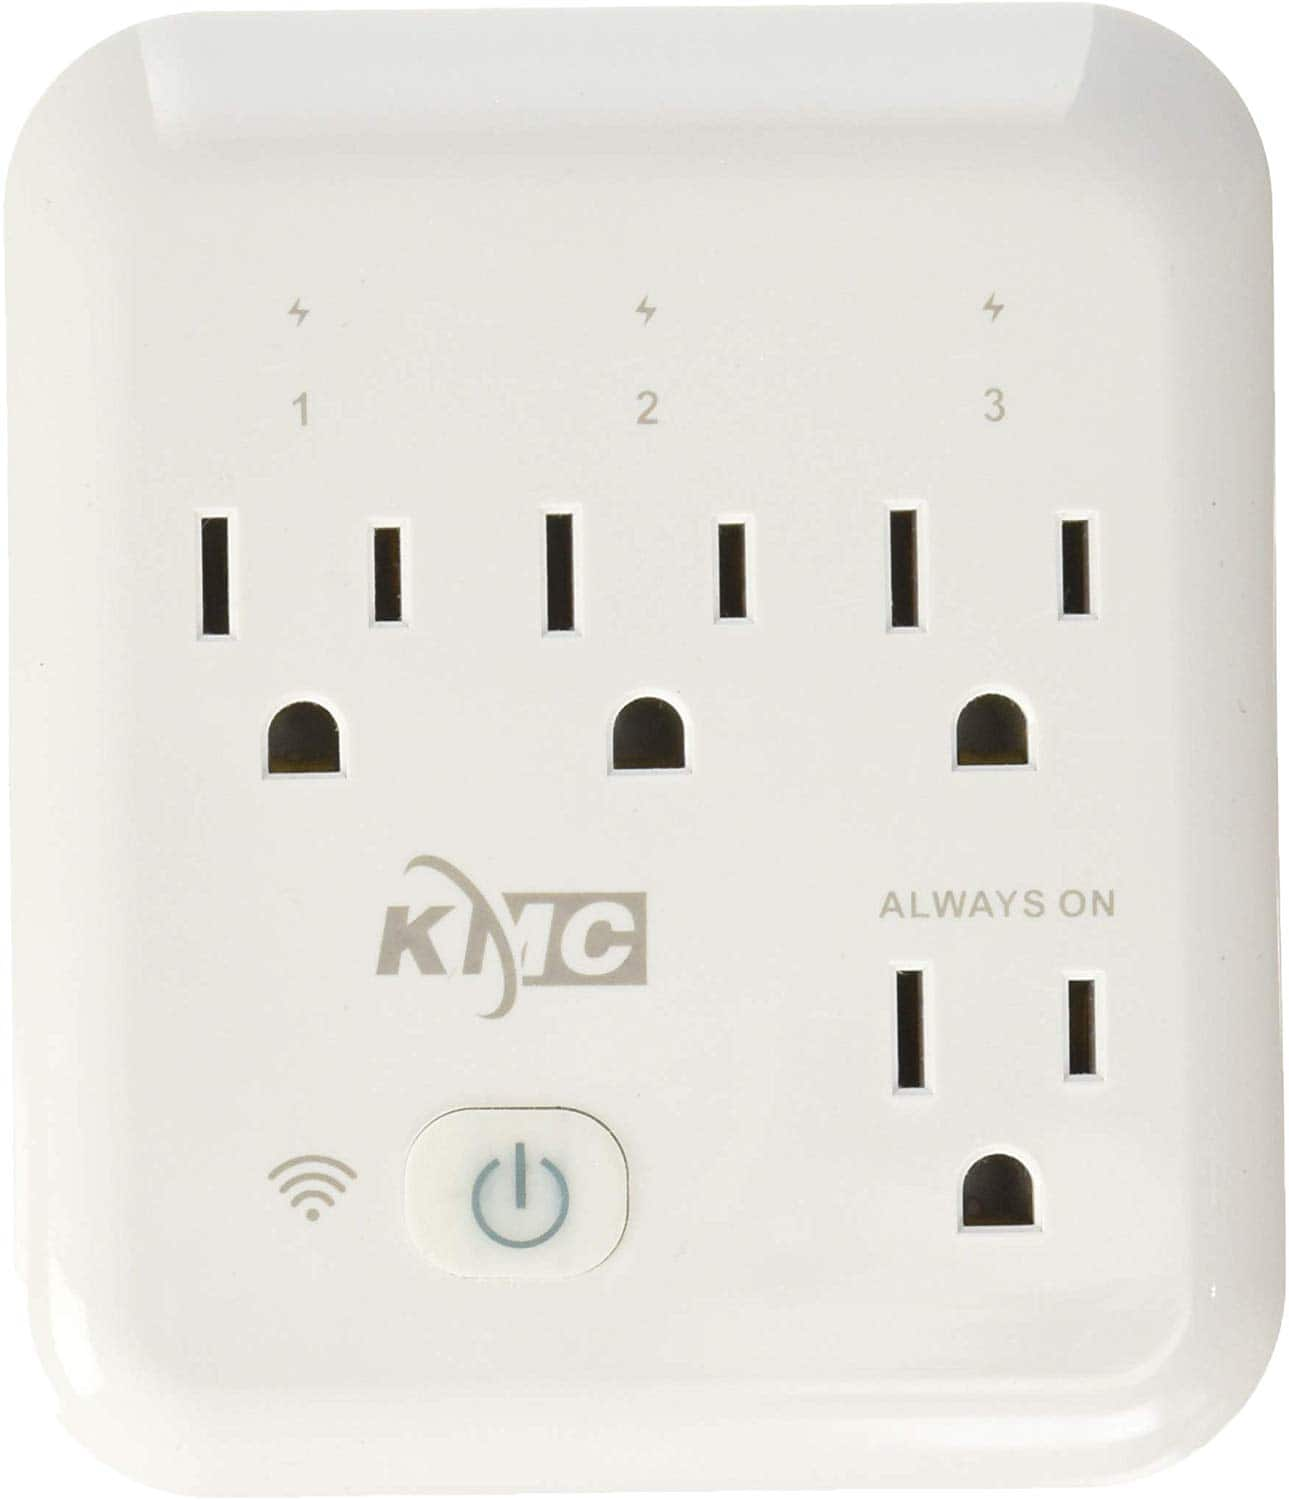 KMC 4 Outlet WiFi Smart Plug with Energy Monitoring Smart Outlet $10, free ship with Prime